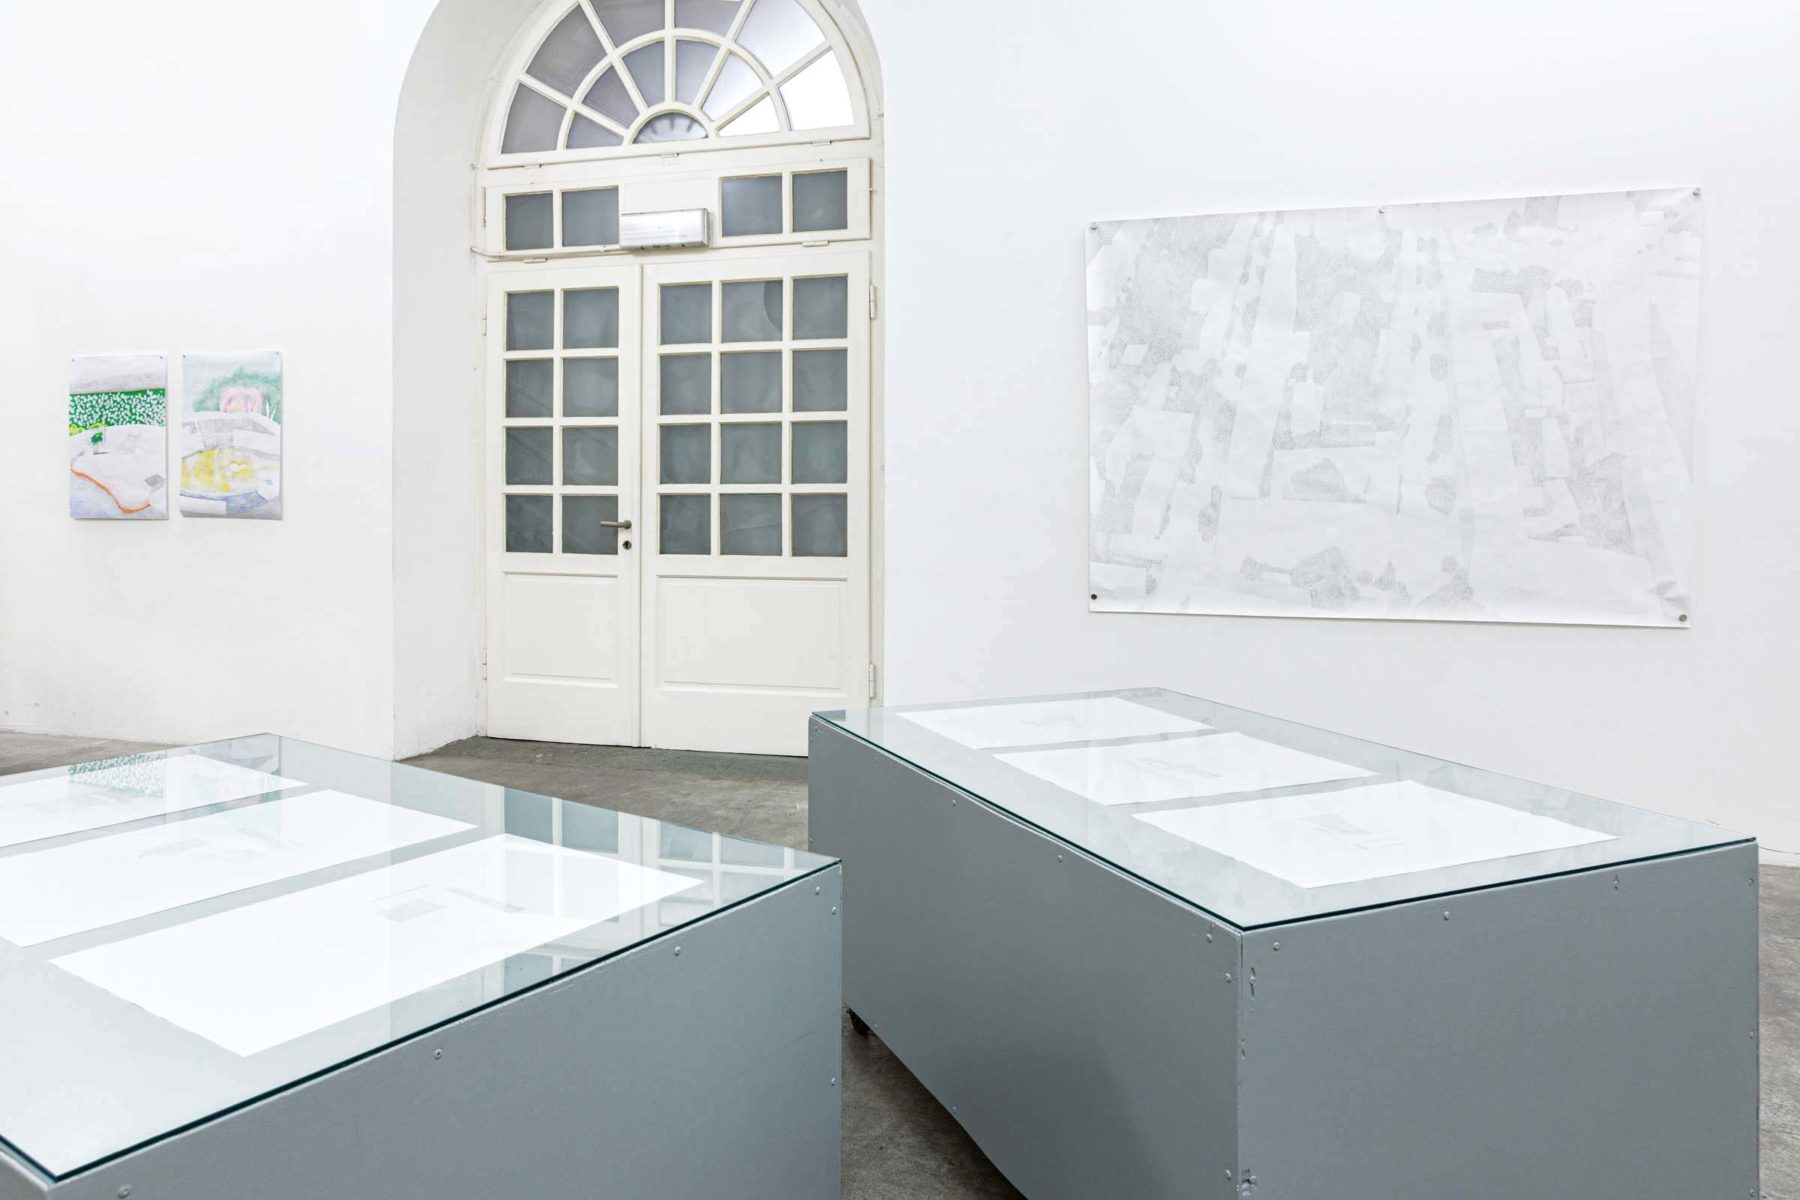 Teresa Mayr, I don't want to be an onager, 2020, installation view, Trieste Contemporanea, ph. N.Covre